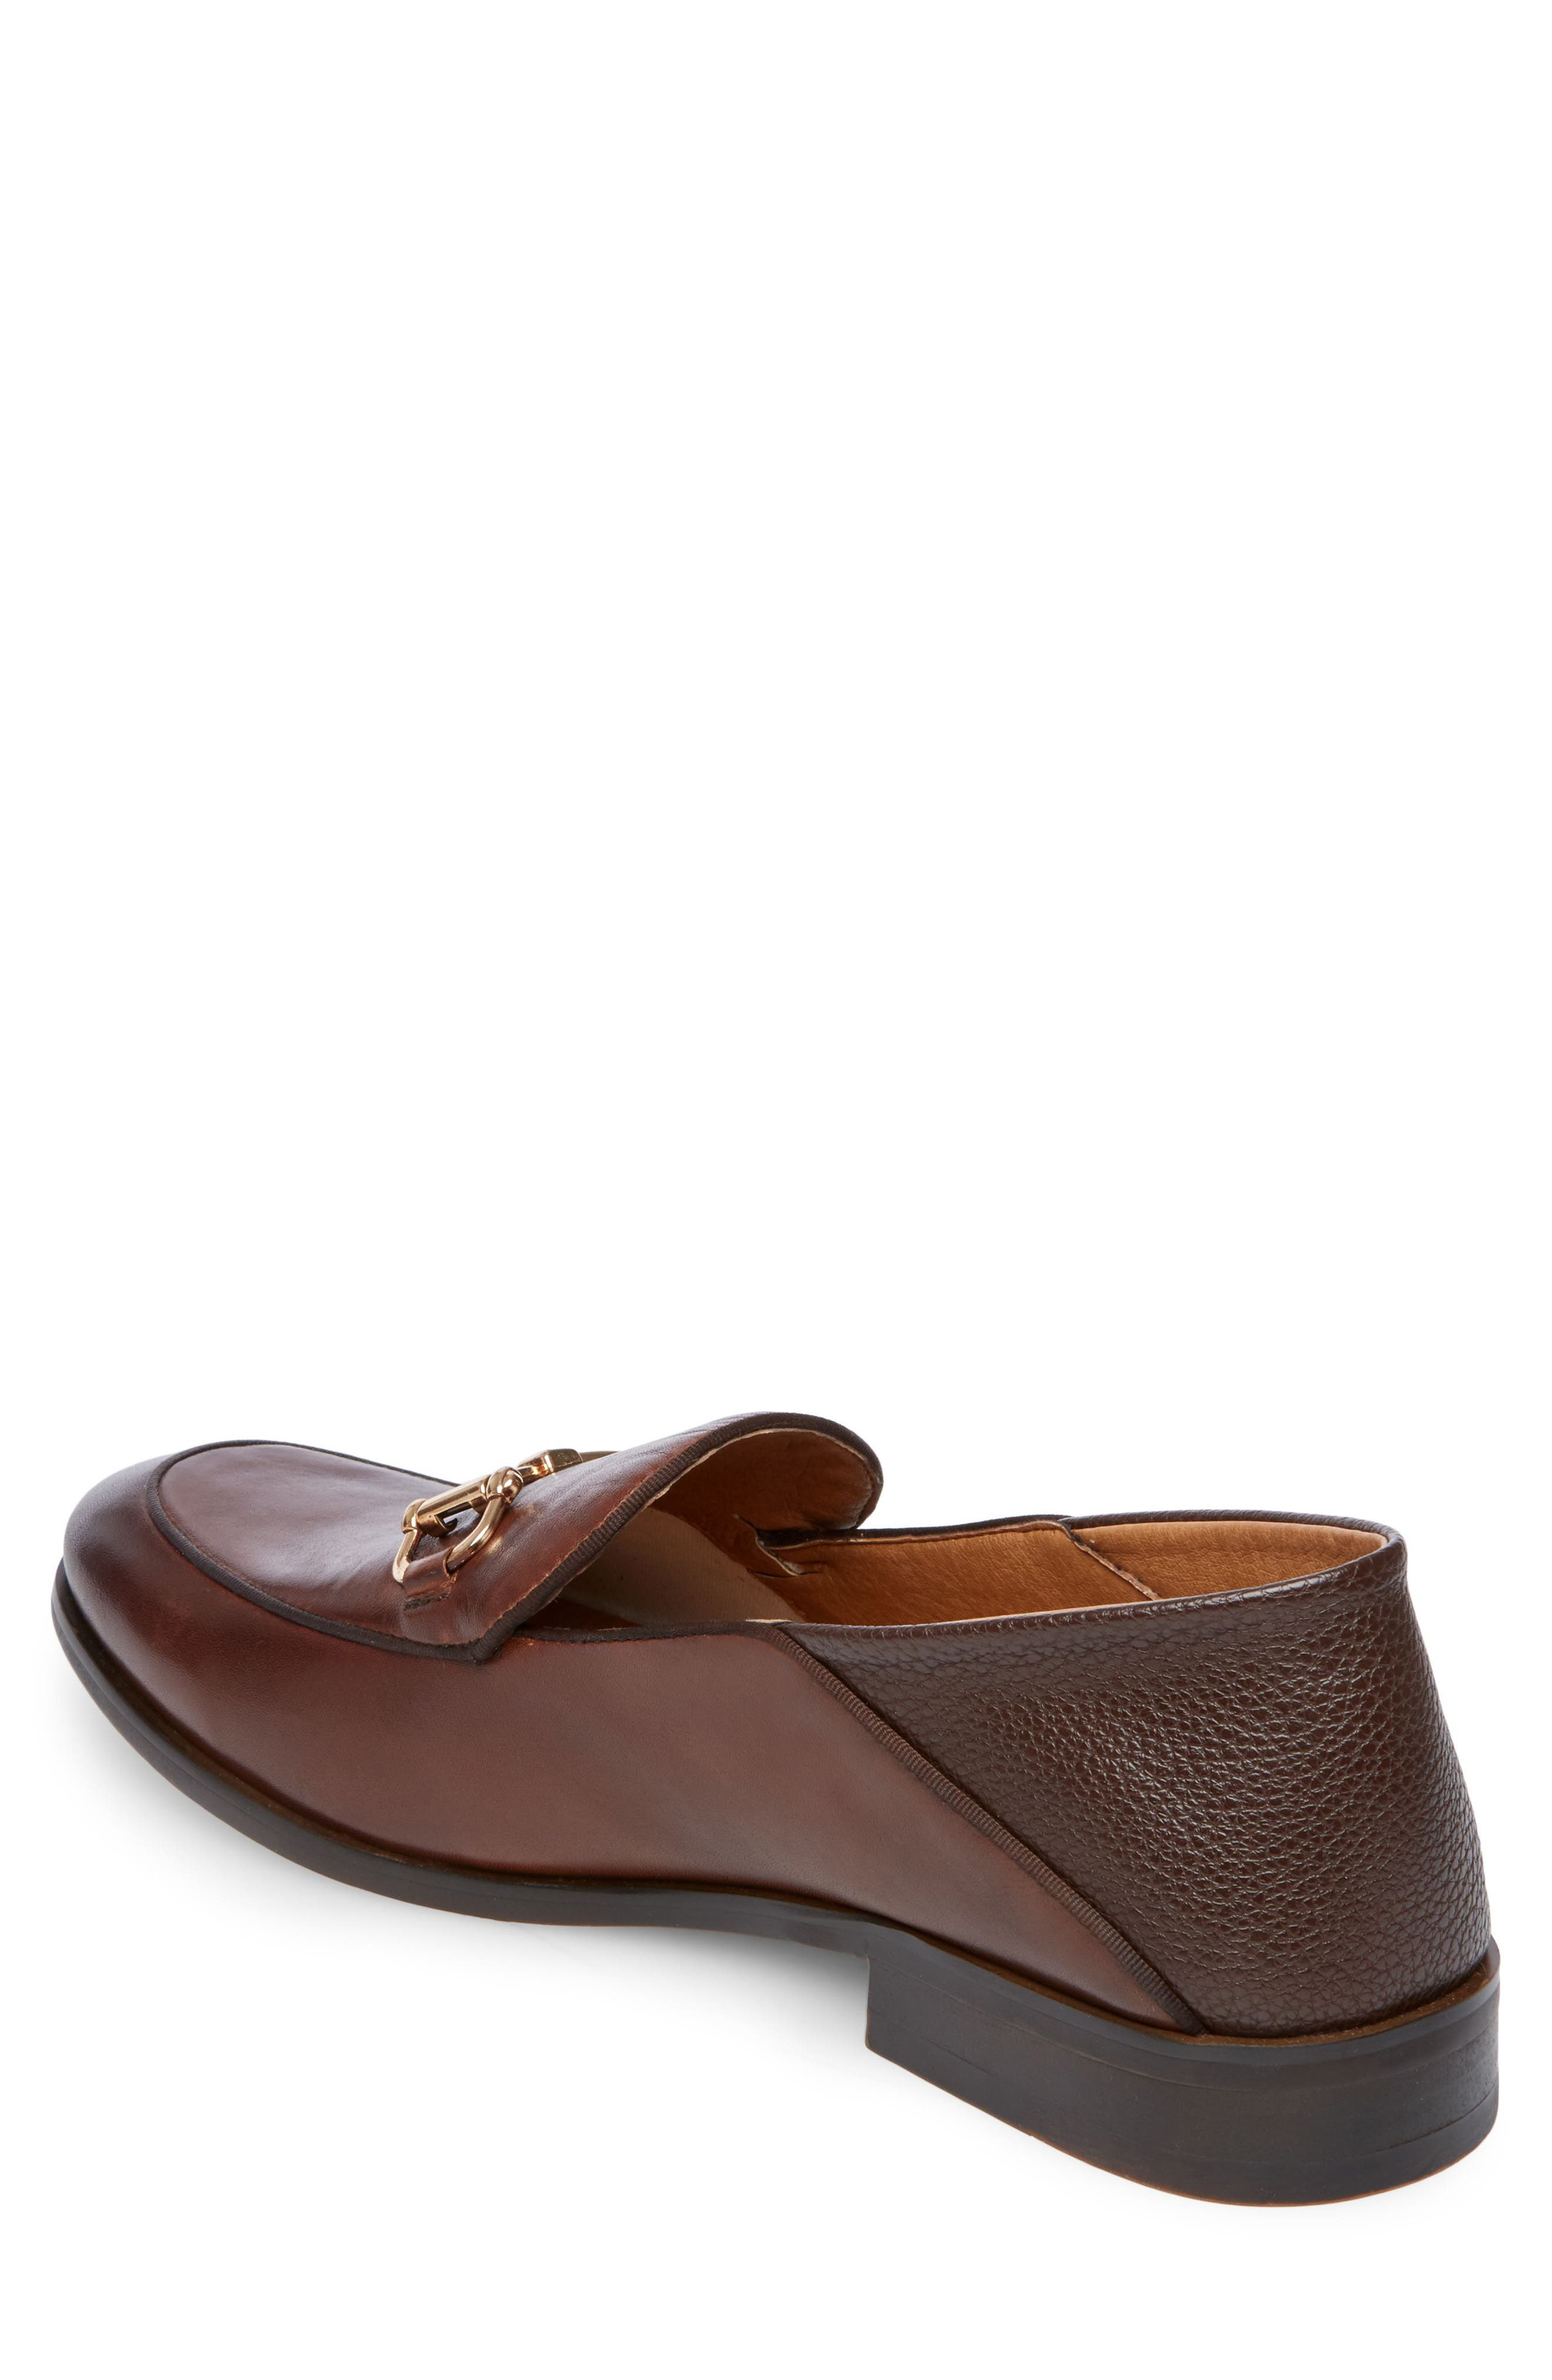 Sauce Bit Collapsible Loafer,                             Alternate thumbnail 6, color,